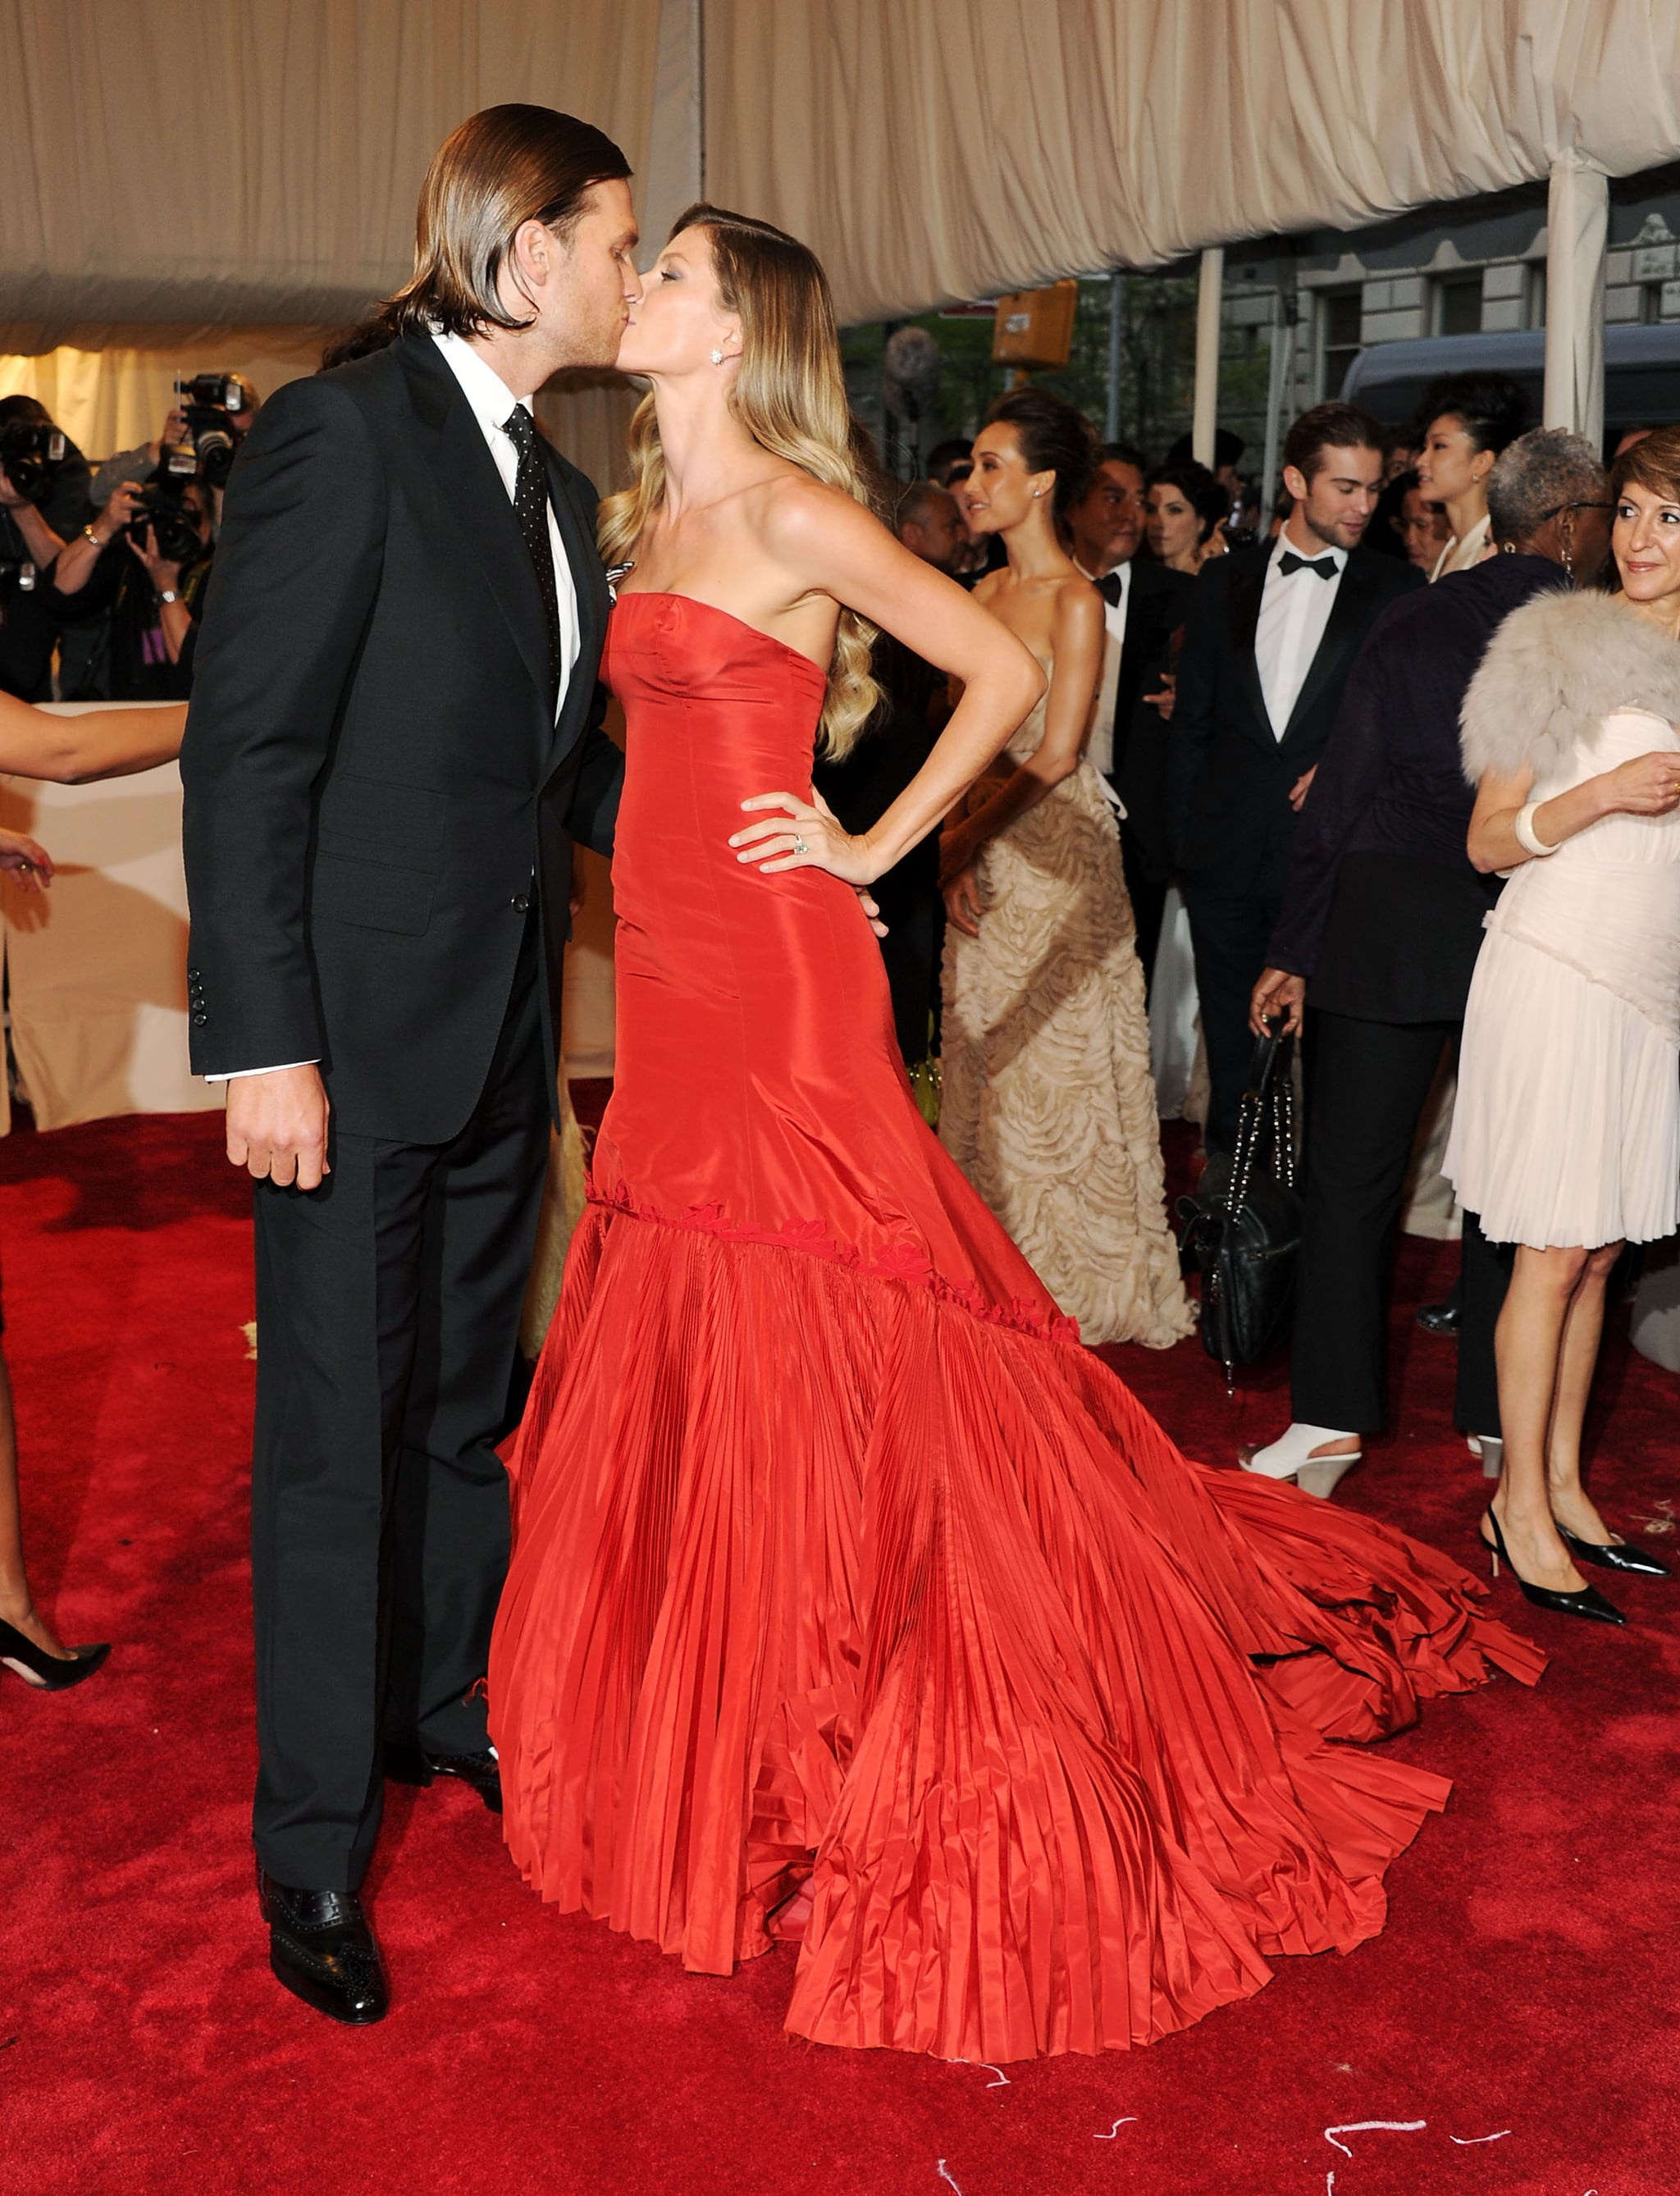 The duo shared a red carpet kiss in May 2011 at the Met Gala.